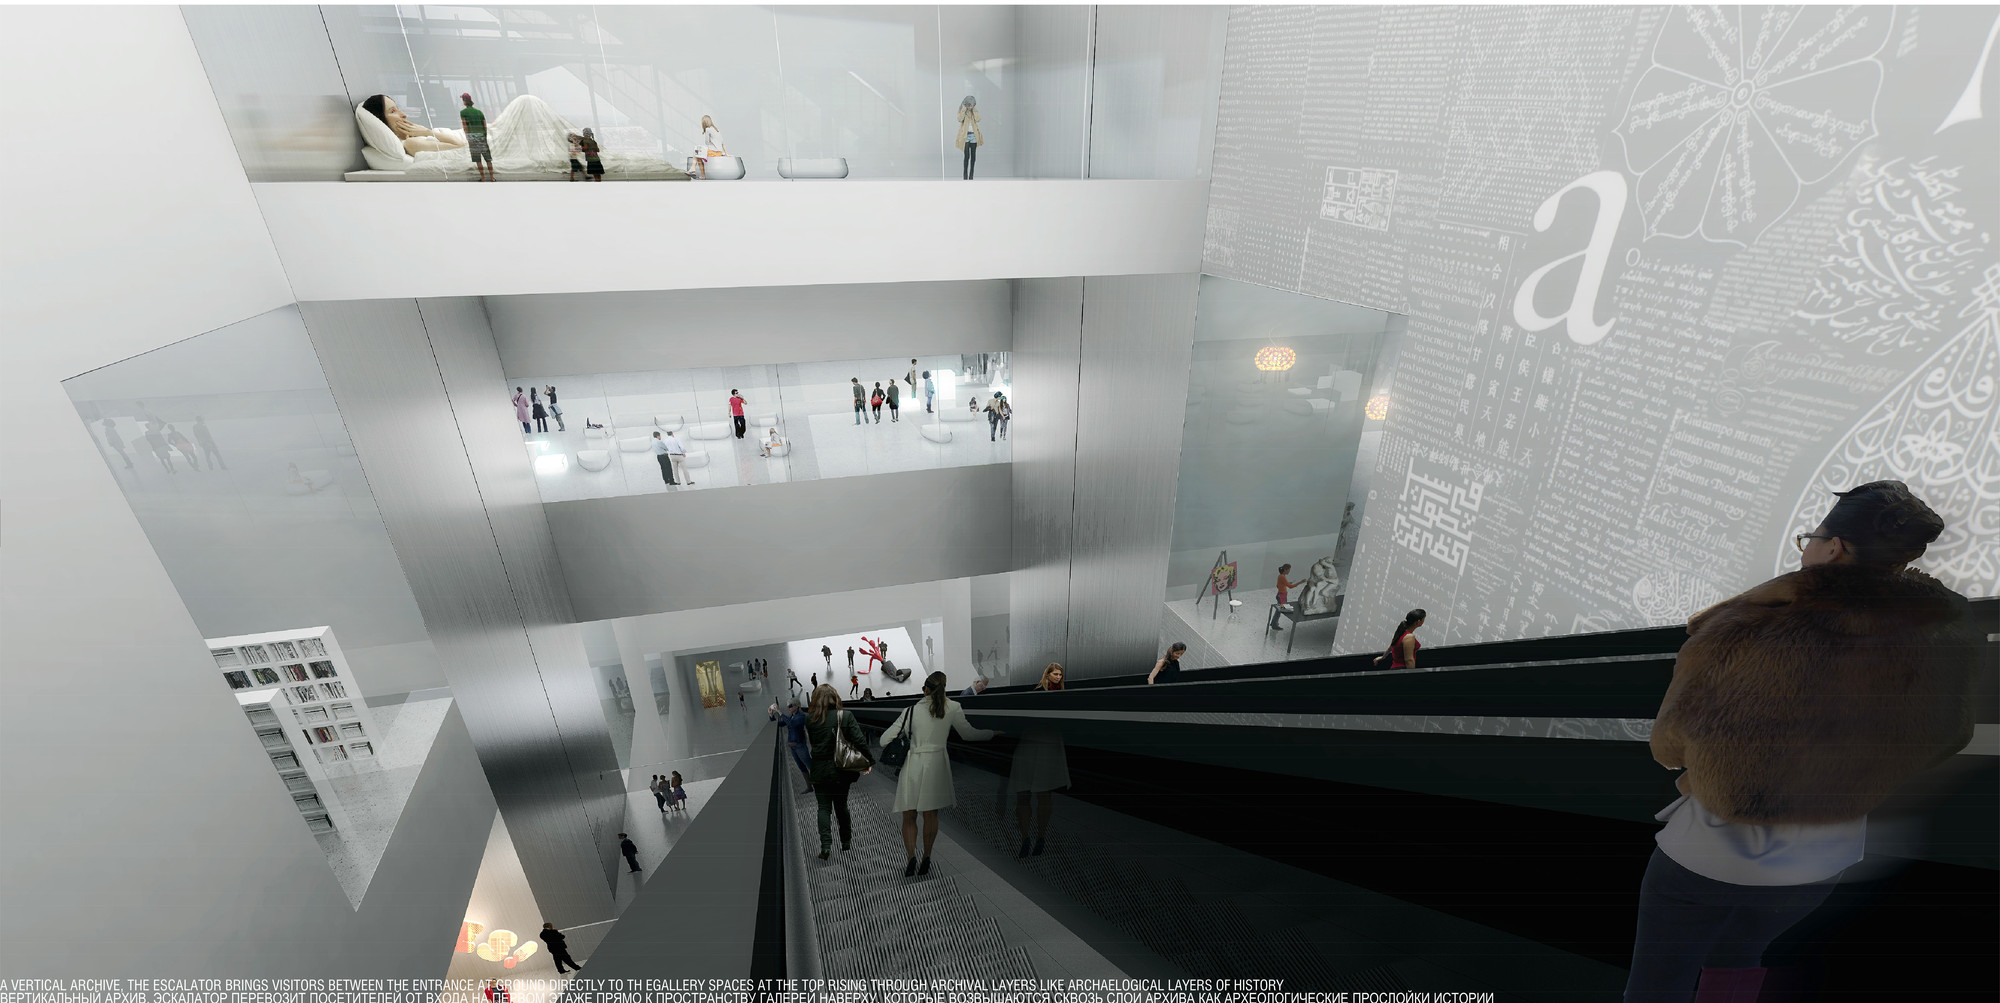 Heneghan Peng Architects' Winning NCCA Proposal. Image Courtesy of NCCA